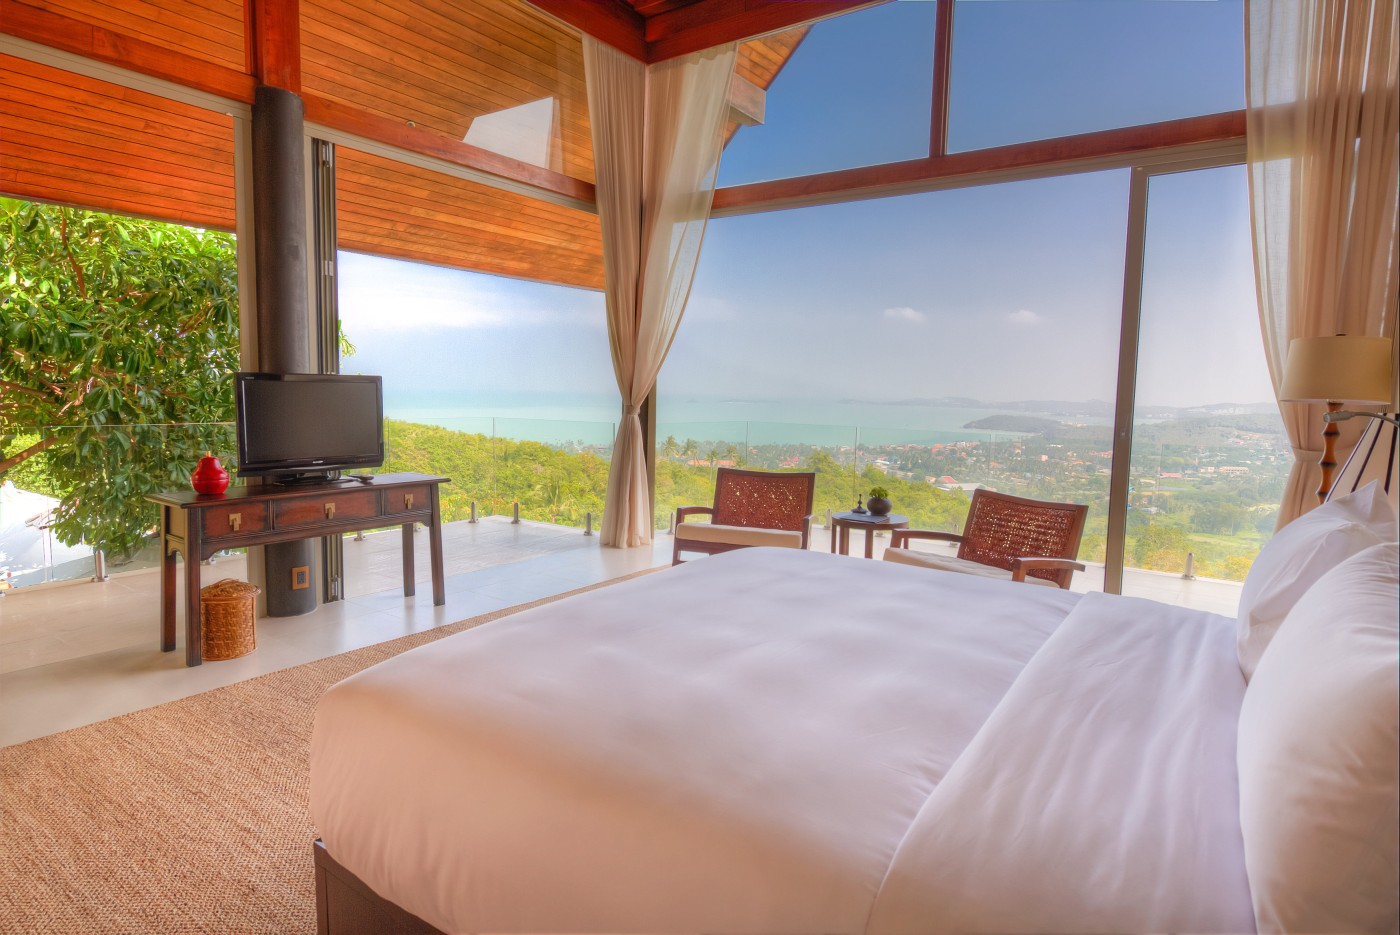 Panacea koh samui 9journeythailand for Bedroom 77 rayong pantip